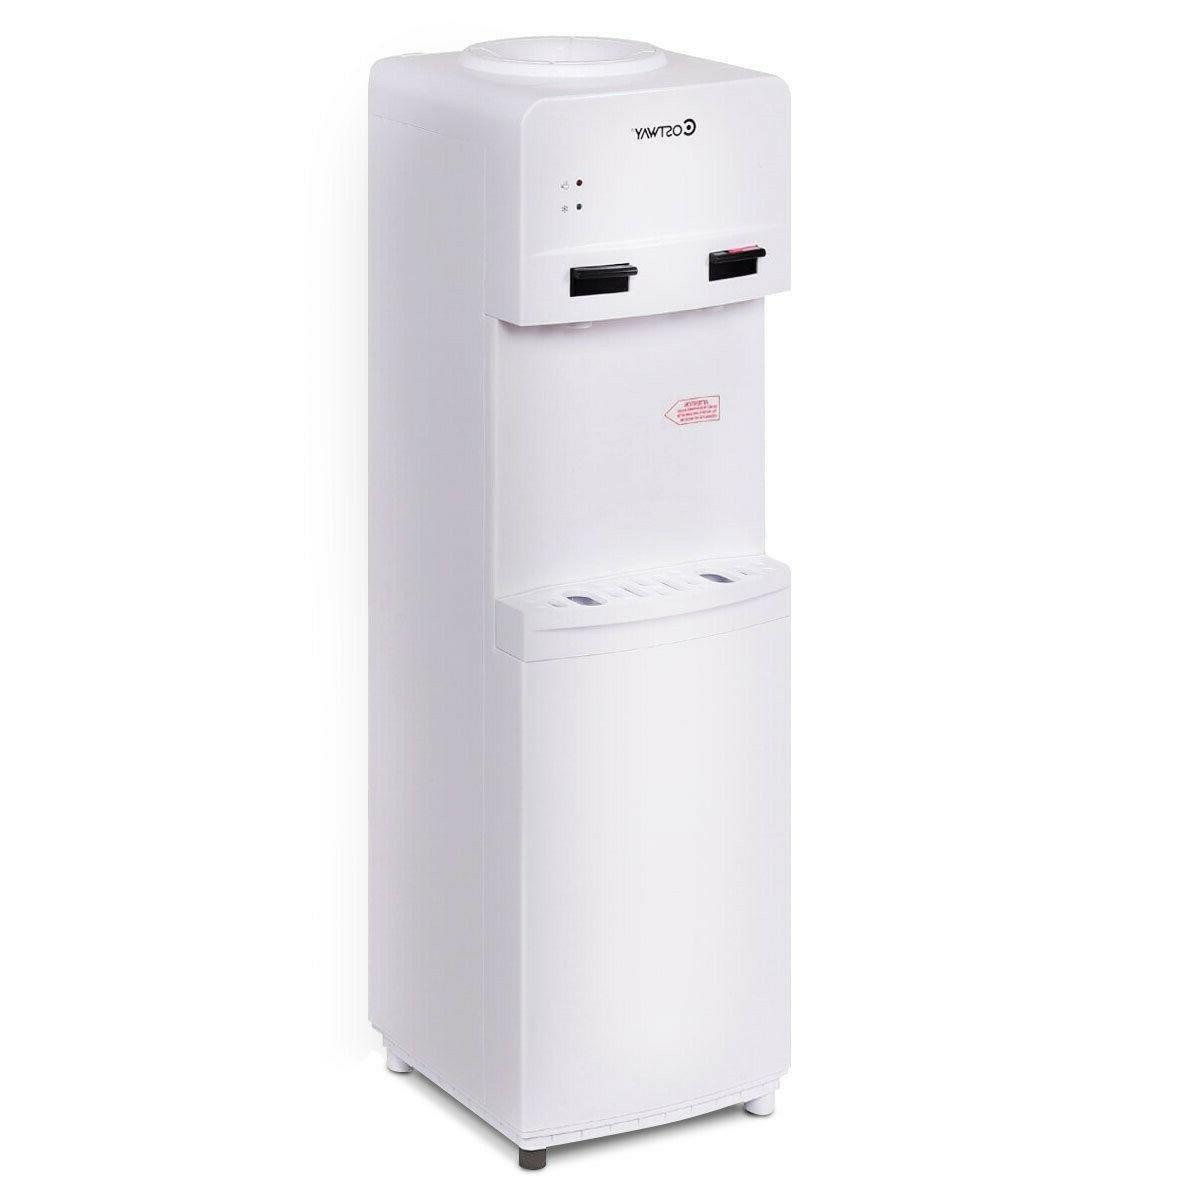 Hot Cold Top Loading Water Dispenser Free standing 5 Gallons